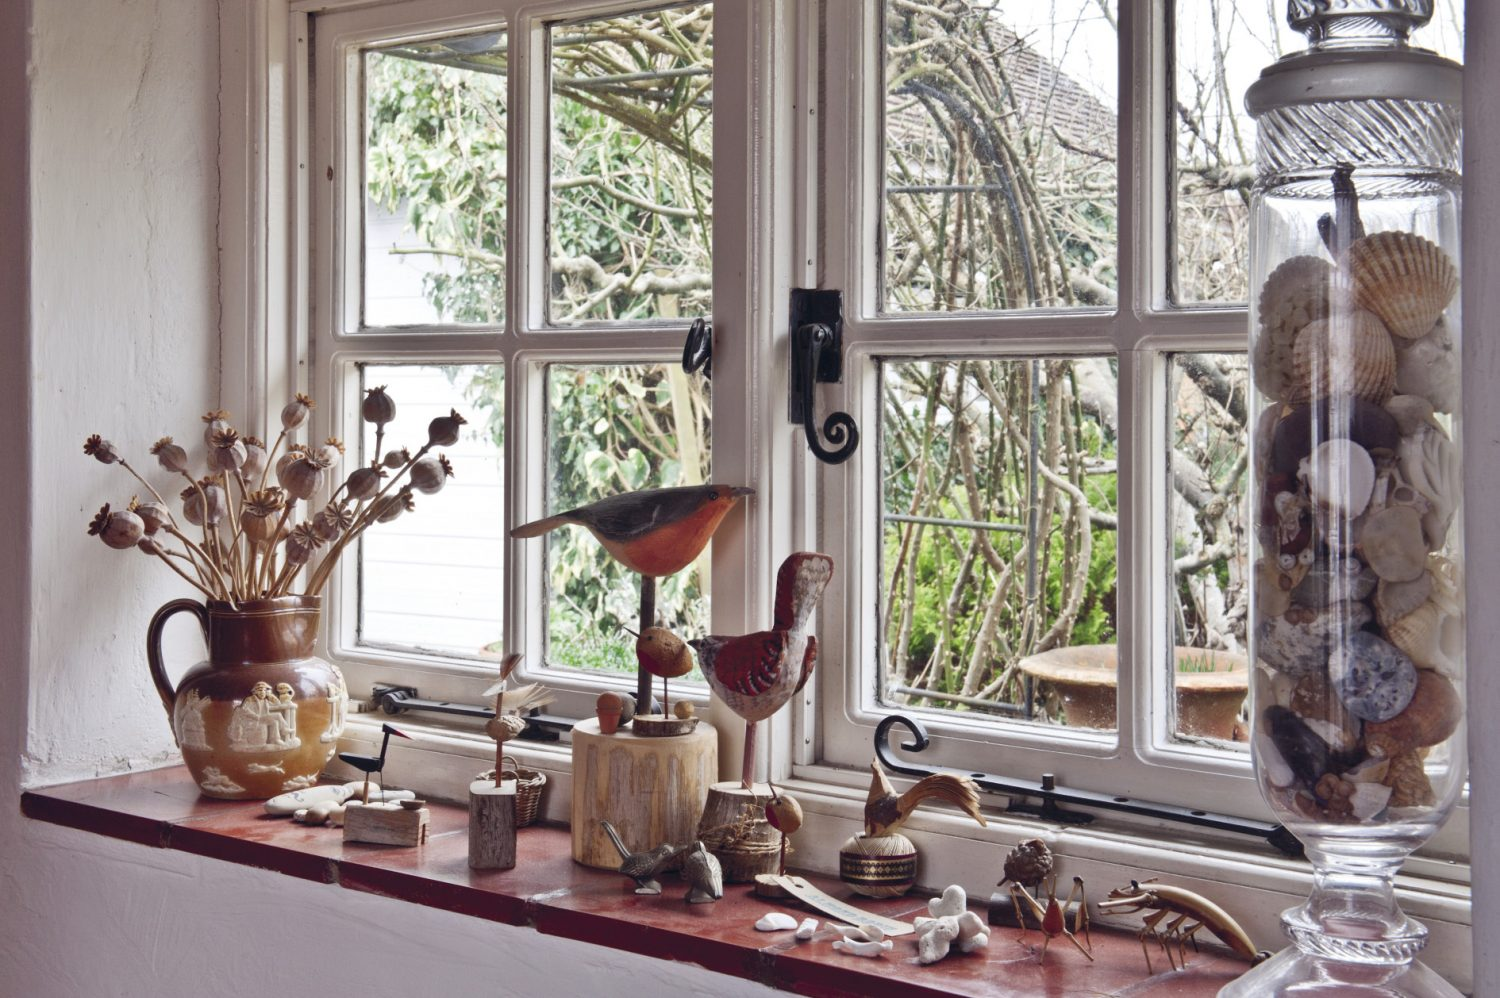 """The entrance hall to Nancy Nicholson's home is enticingly adorned with intriguing objects and 'finds'. There is a sun-bleached sheep's skull, an apothecary's jar filled with shells and several sprigs of dried wild flowers and sea grasses. An embroidered picture of the Madonna and Child in the style of a Russian icon hangs on the wall. """"That's by my mother, Joan,"""" explains Nancy"""